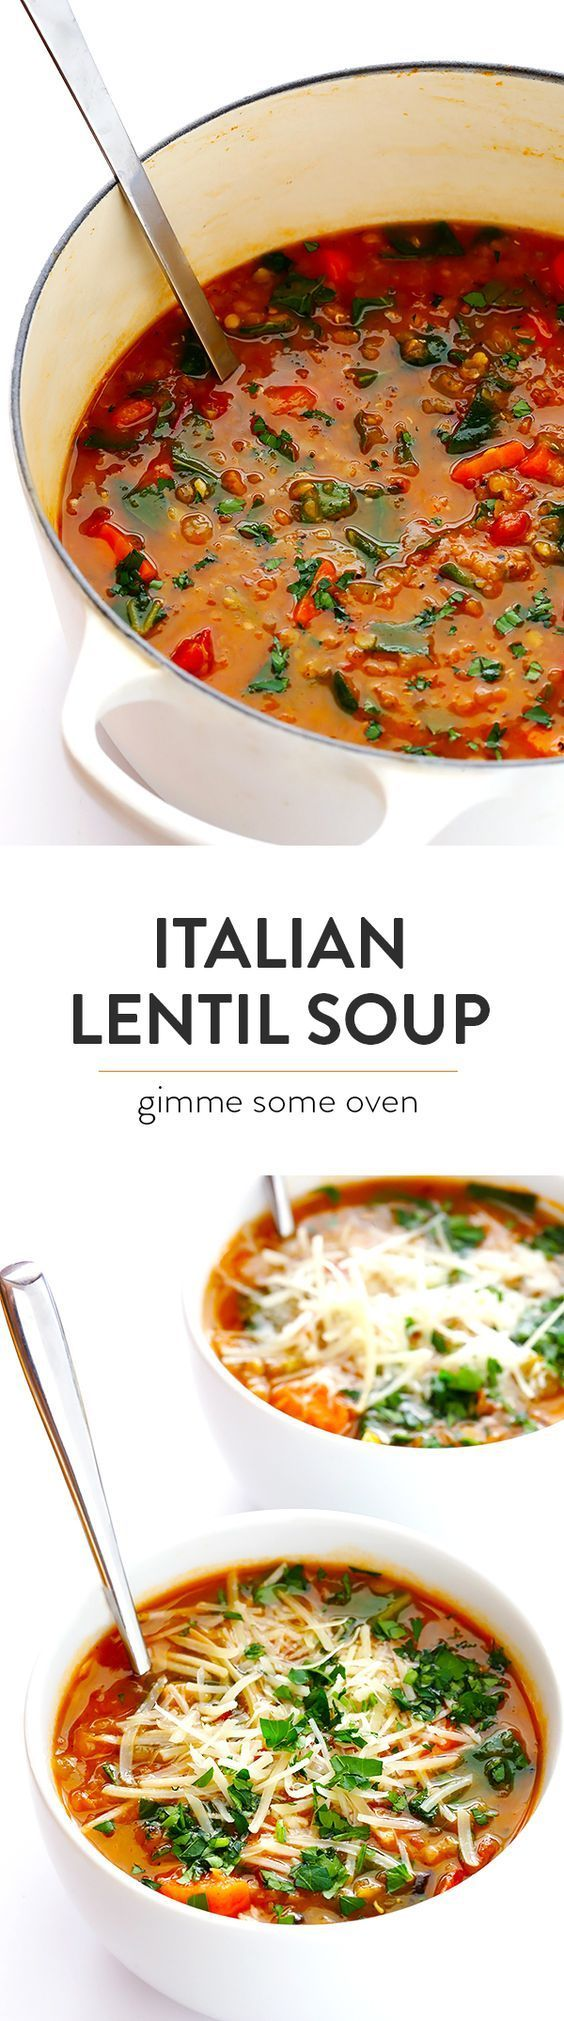 17 best images about healthy eating on pinterest for Easy tasty soup recipes